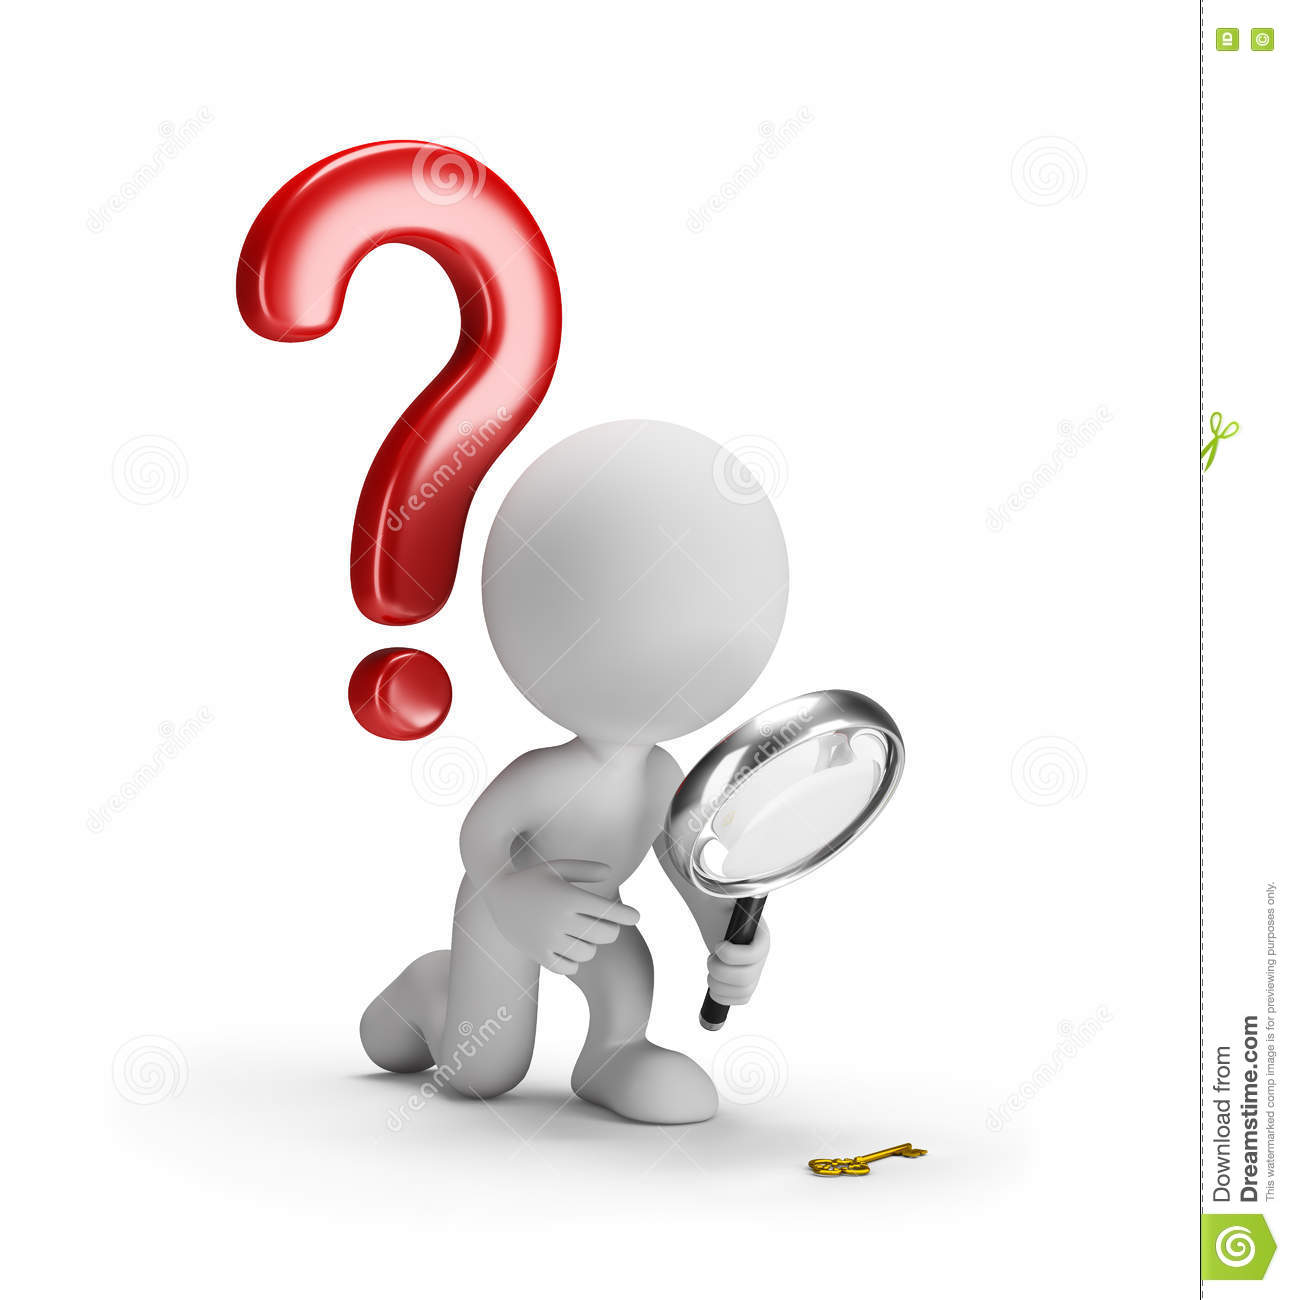 3d person with magnifying glass and question mark stock images image - 3d Man With Magnifying Glass Royalty Free Stock Photography